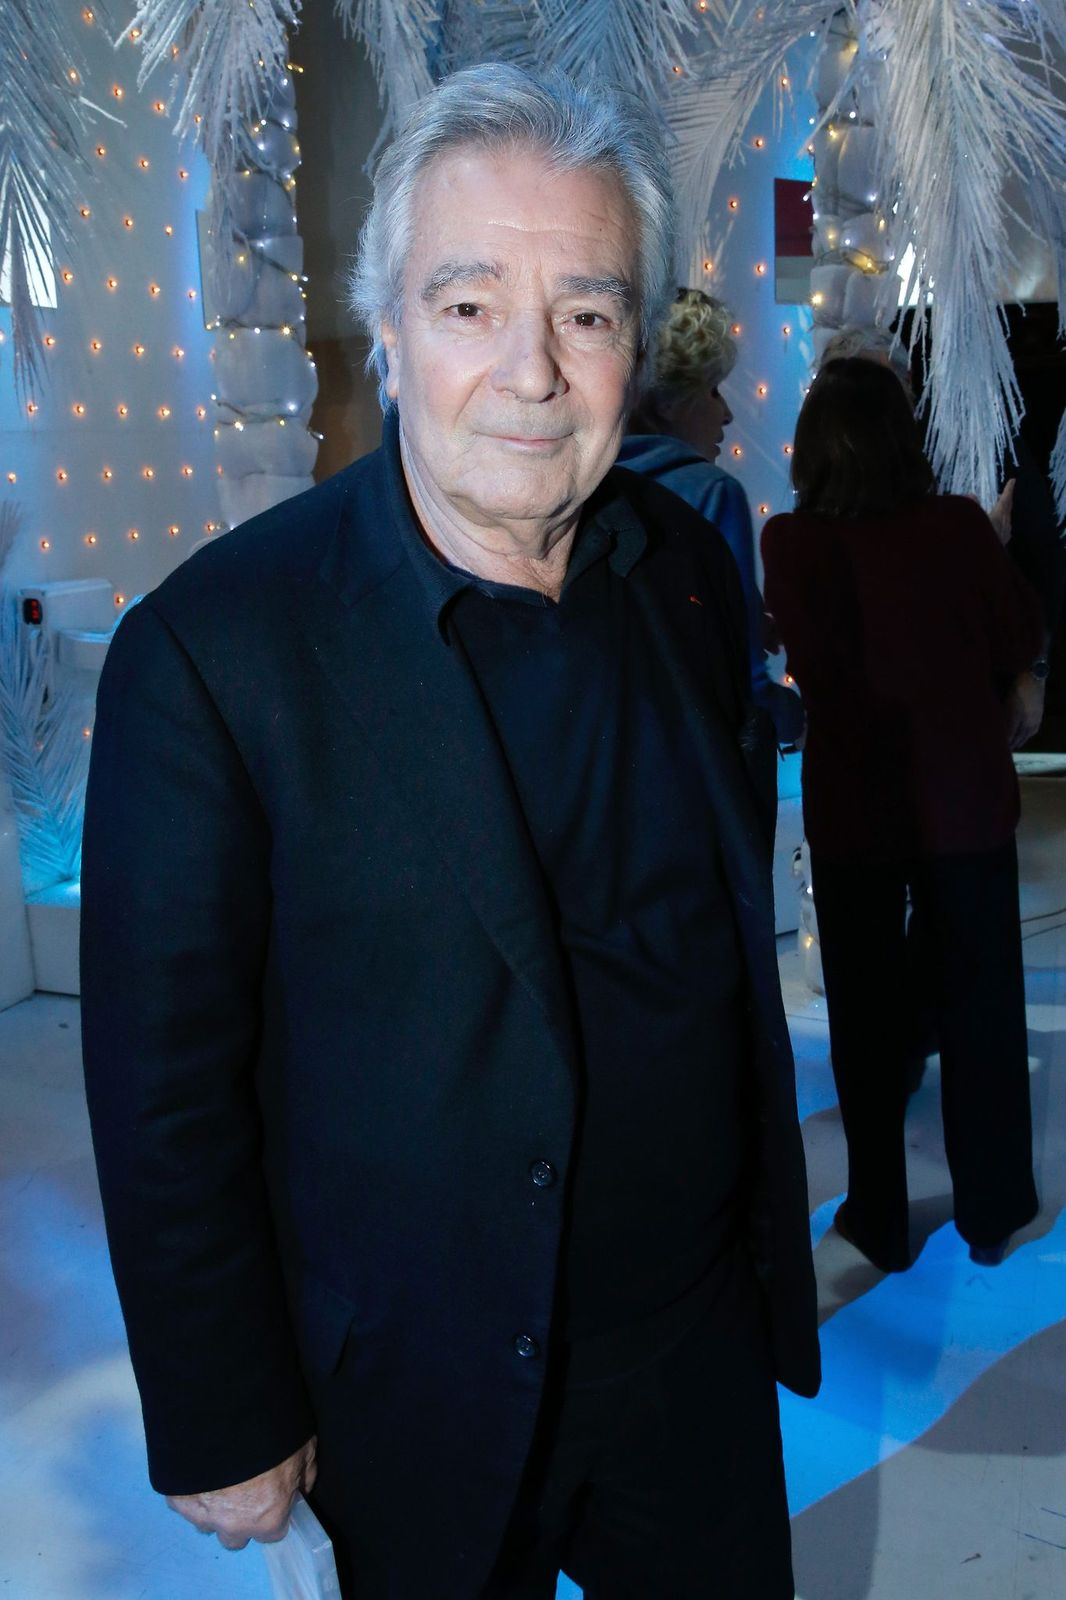 L'acteur Pierre Arditi au Pavillon Gabriel le 9 décembre 2014 à Paris, France. | Photo : Getty Images